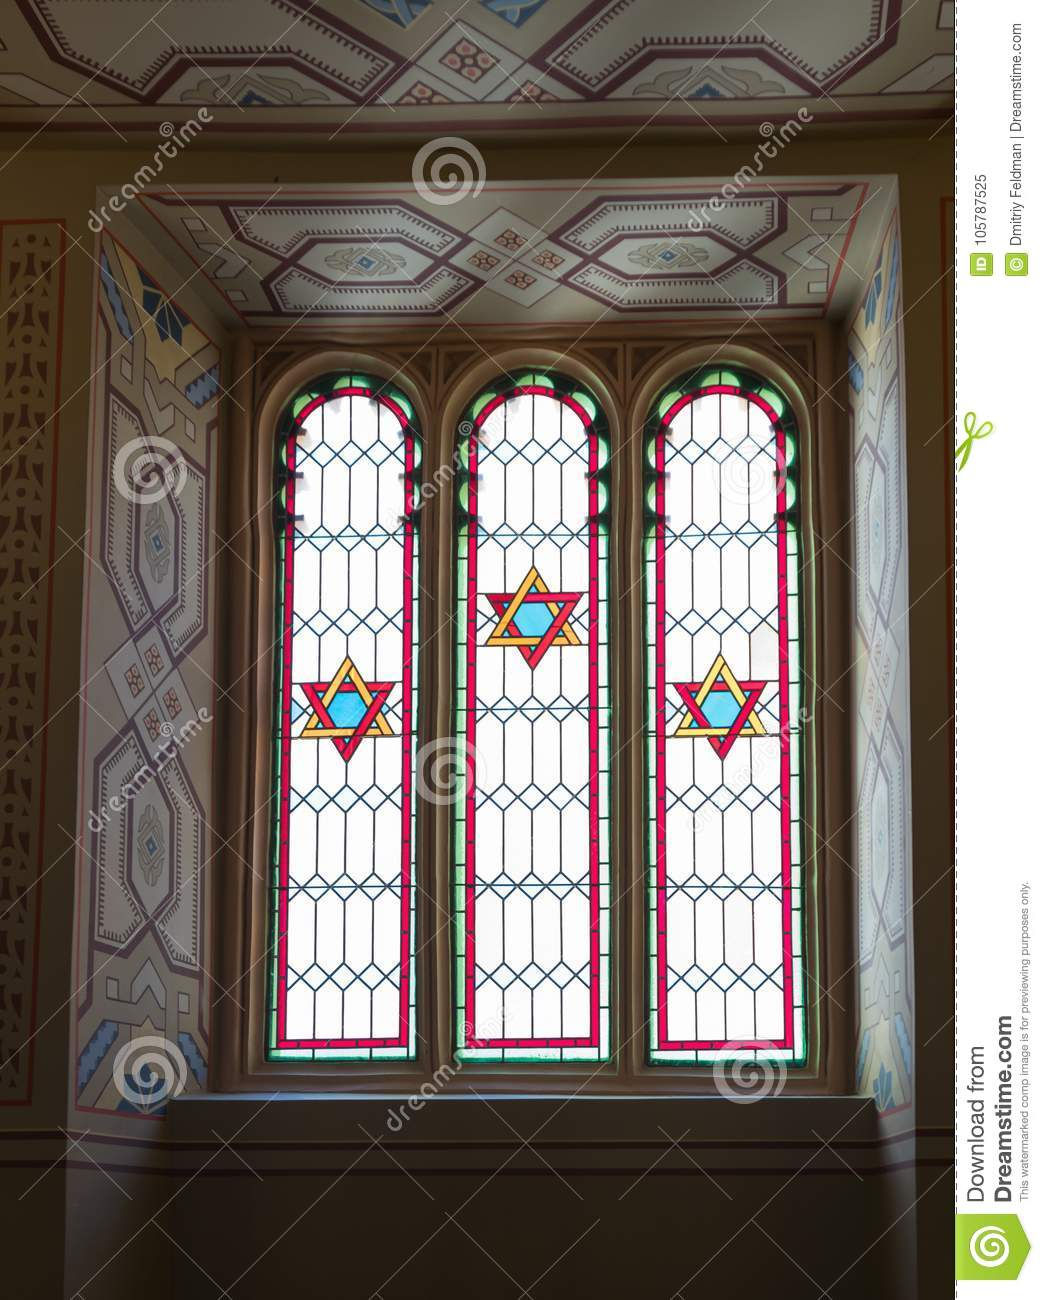 Window decorated with stained glass in the synagogue Coral in Bucharest city in Romania